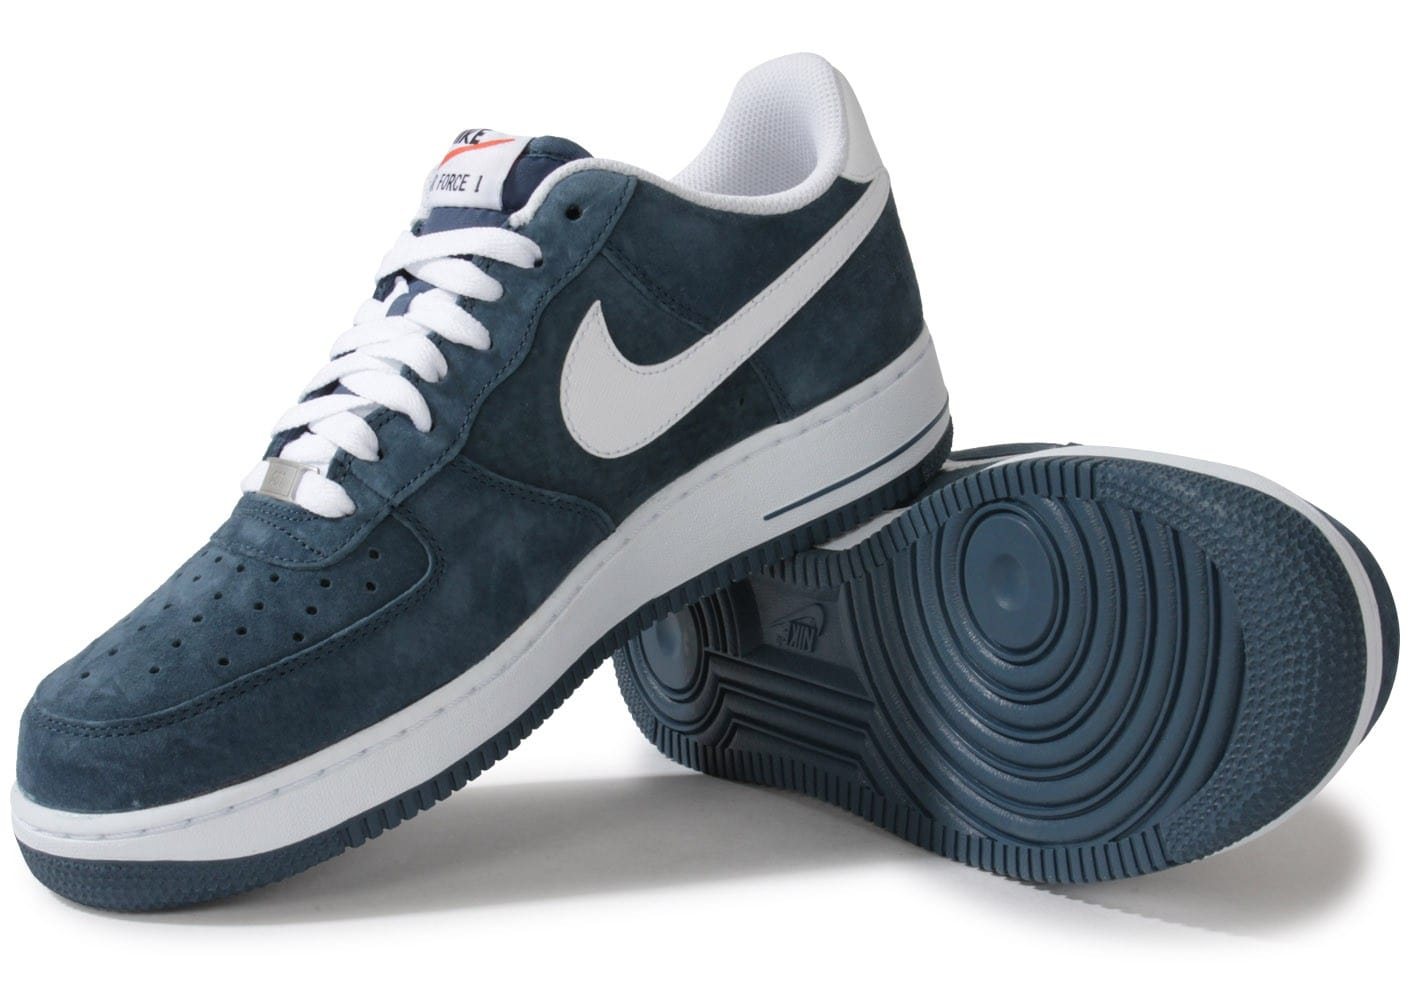 best service 209f8 9f497 ... ultra moire italy chaussures nike air force 1 suede slate bleue vue  intérieure 5b11a cb341 ...